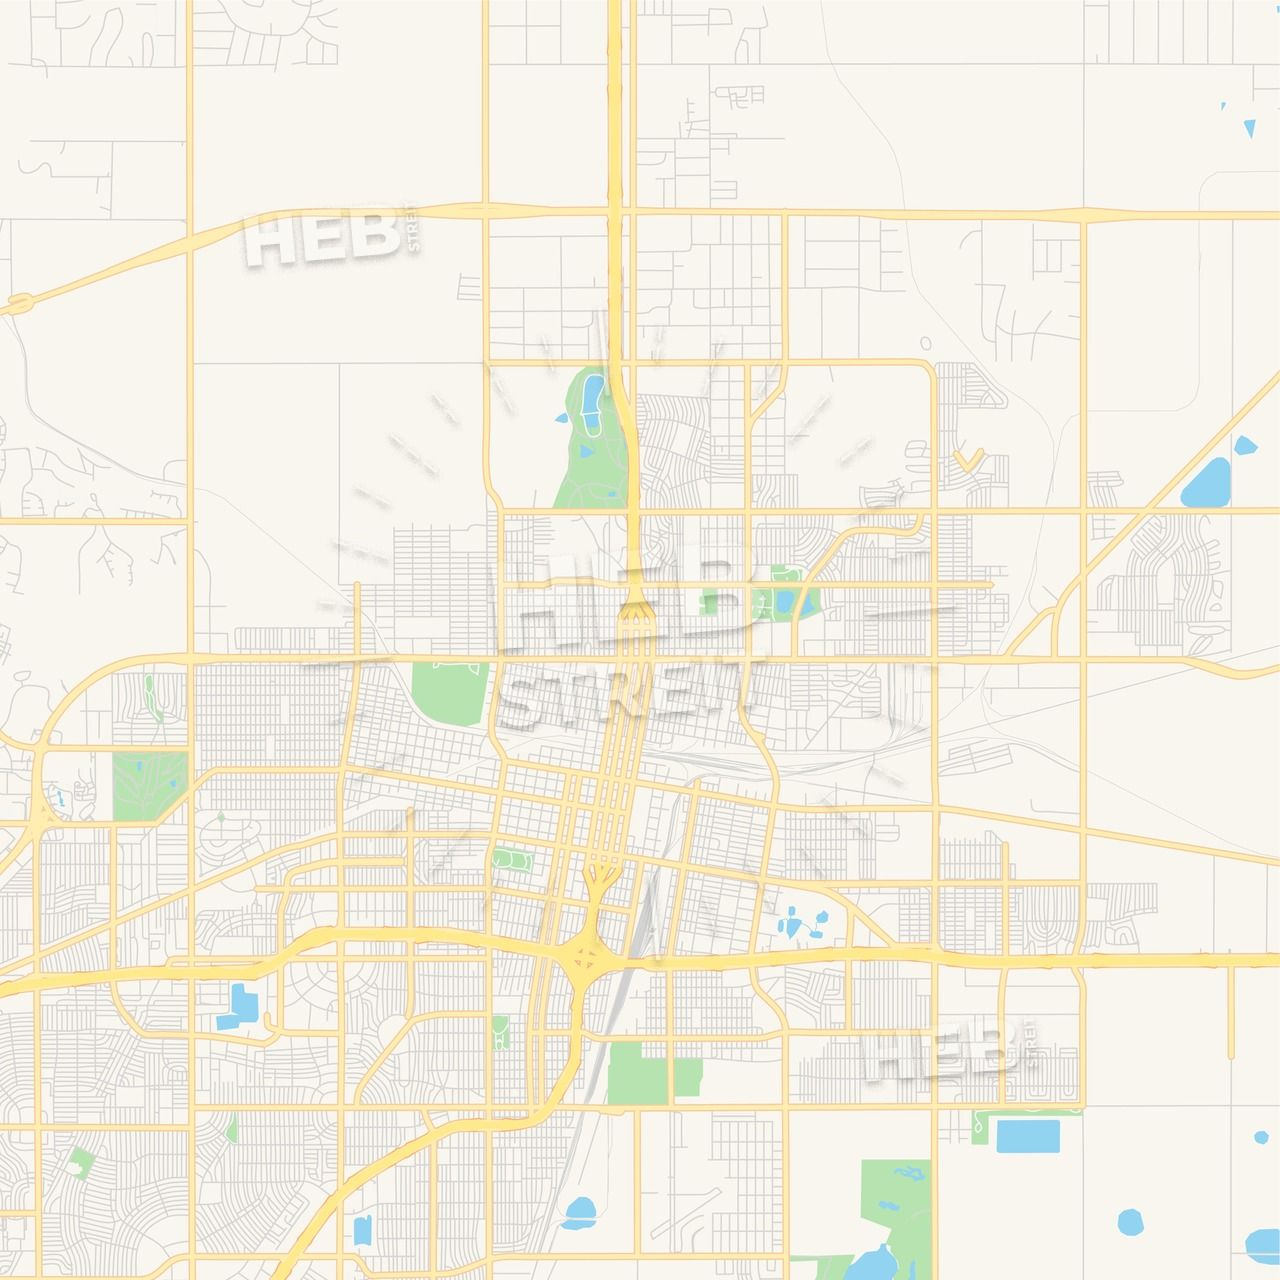 Empty vector map of Amarillo, Texas, USA | Maps Vector ... on map of lackland air force base tx, map of ardmore tx, map of miami tx, map of wink tx, map of smyer tx, map of detroit tx, map of george west tx, map of n richland hills tx, map of memphis tx, map of garza county tx, map of midland tx, map of winkler county tx, map of young county tx, map of guthrie tx, map of webb county tx, map of texoma tx, map texas tx, map of riverside tx, map of gladewater tx, map of ector county tx,